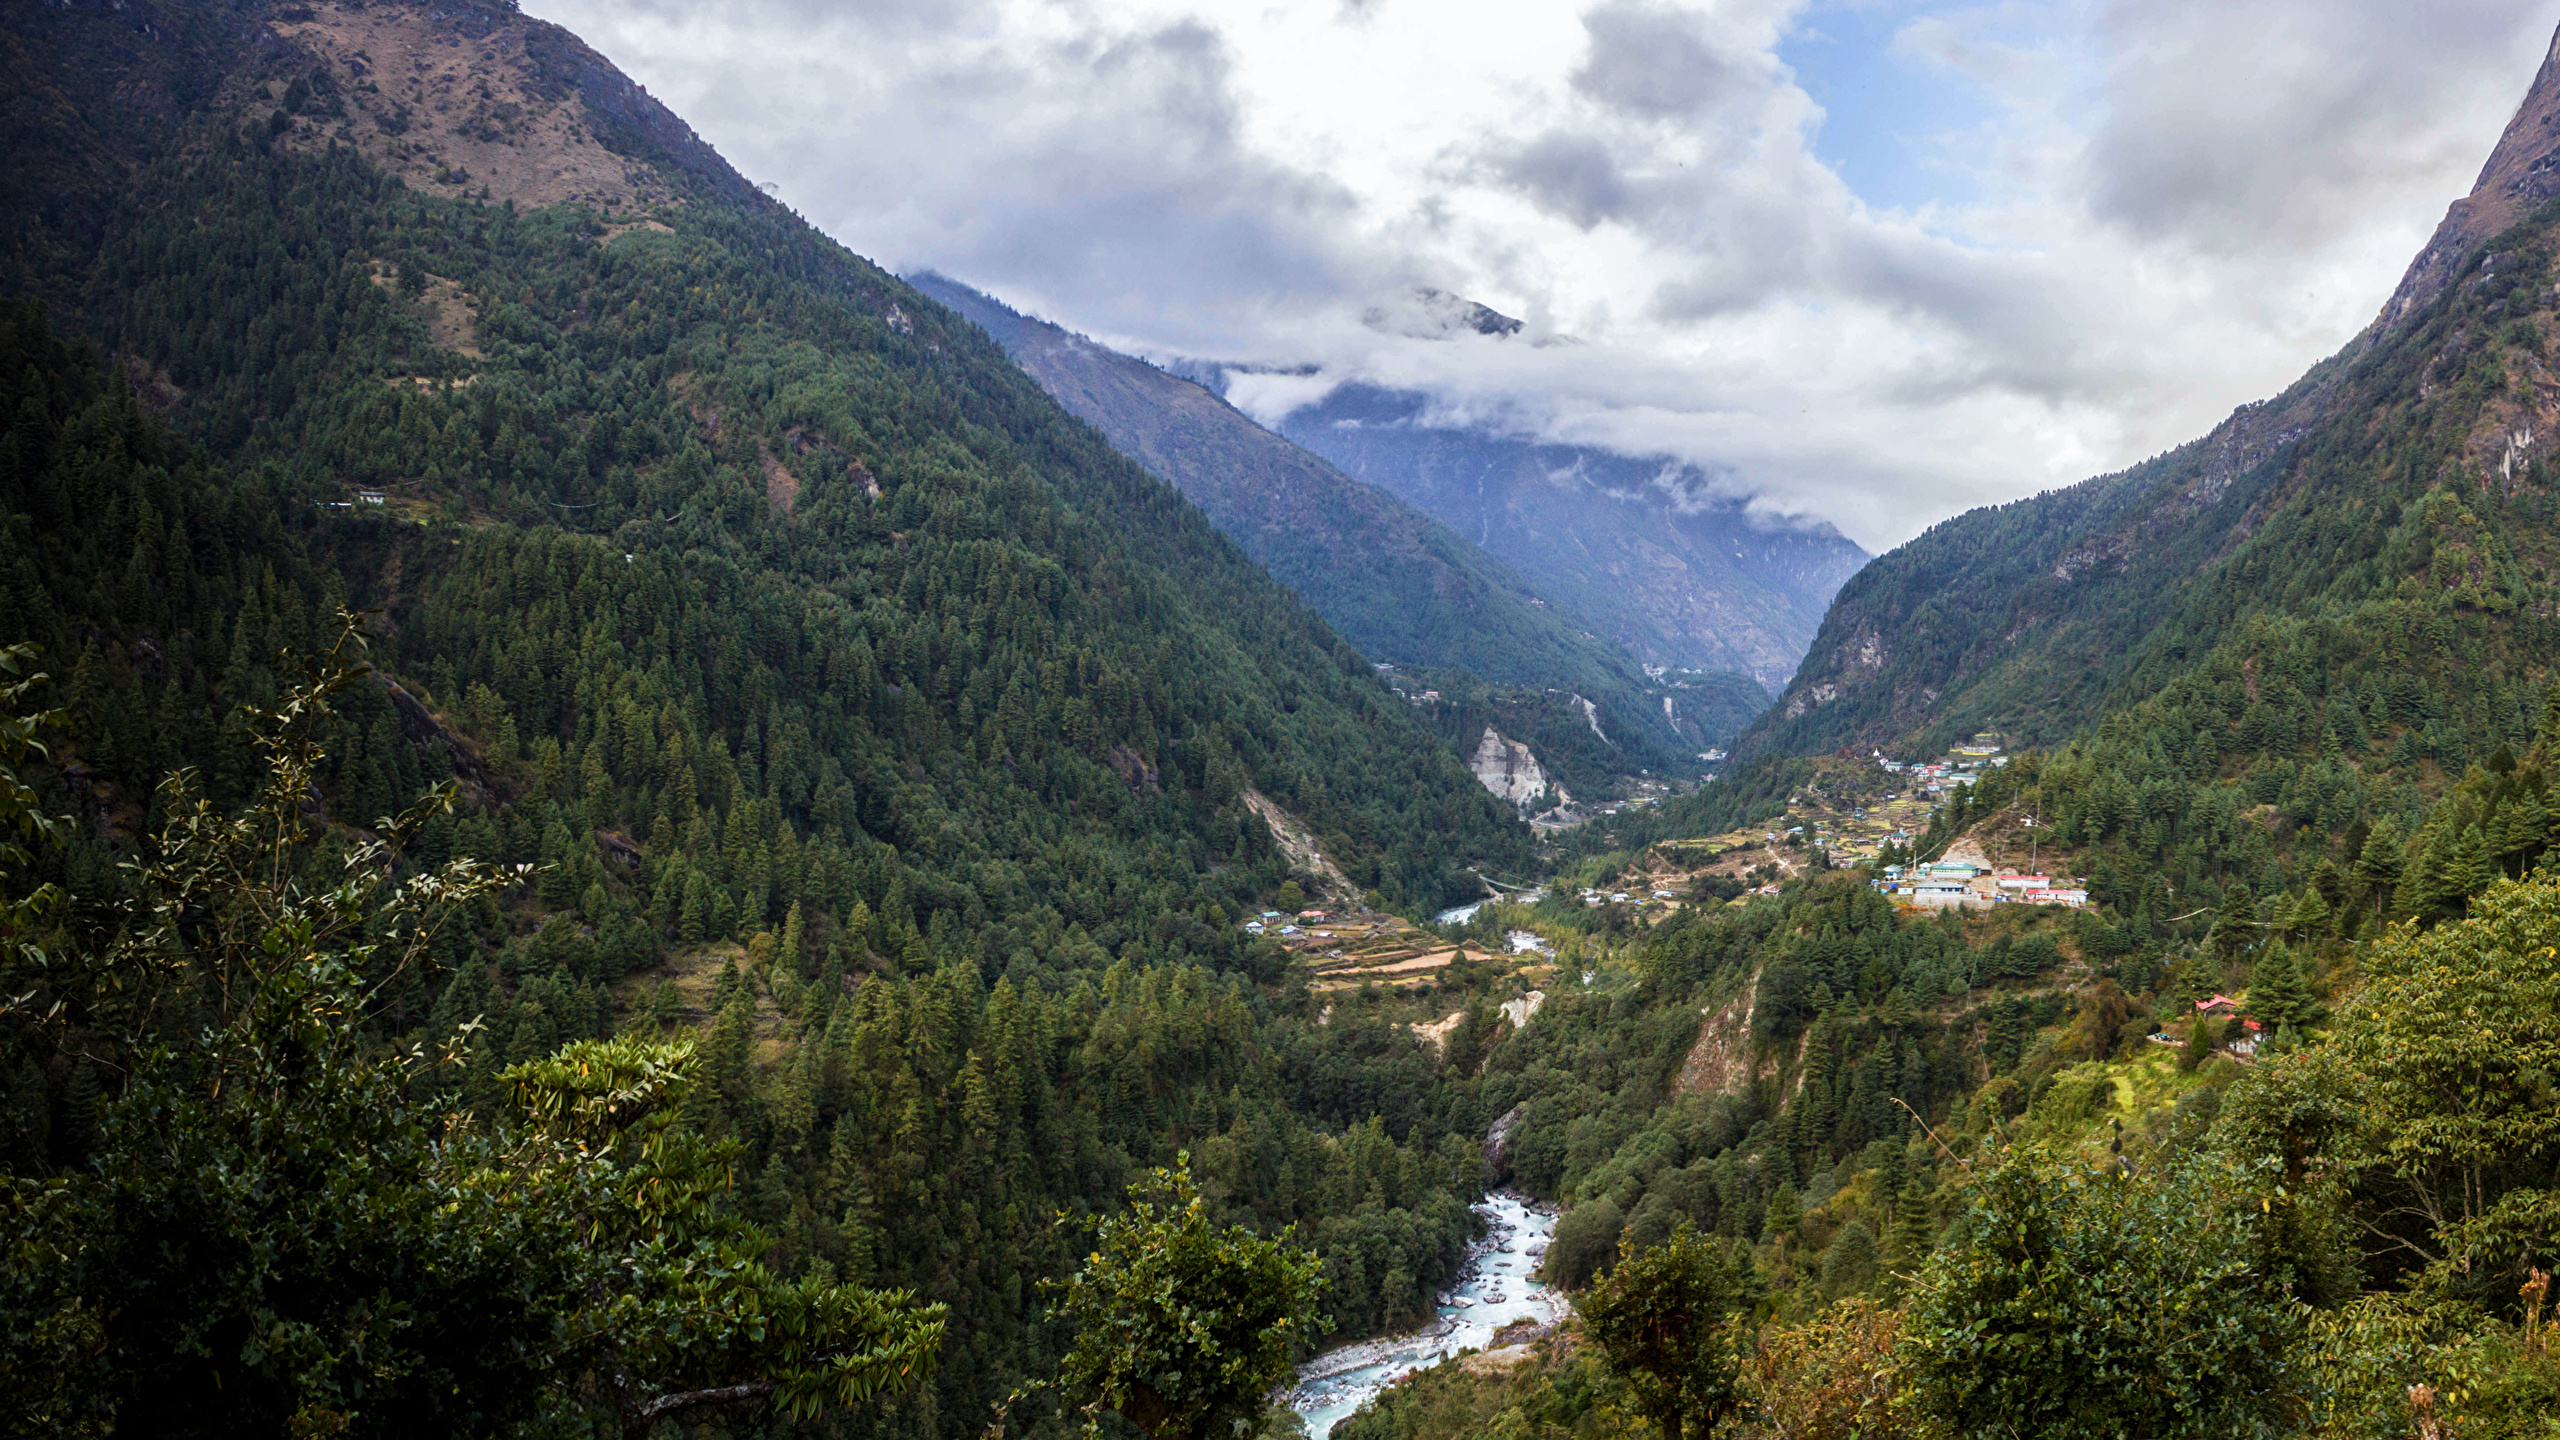 Photo Everest Nepal Nature Mountains Forests River 2560x1440